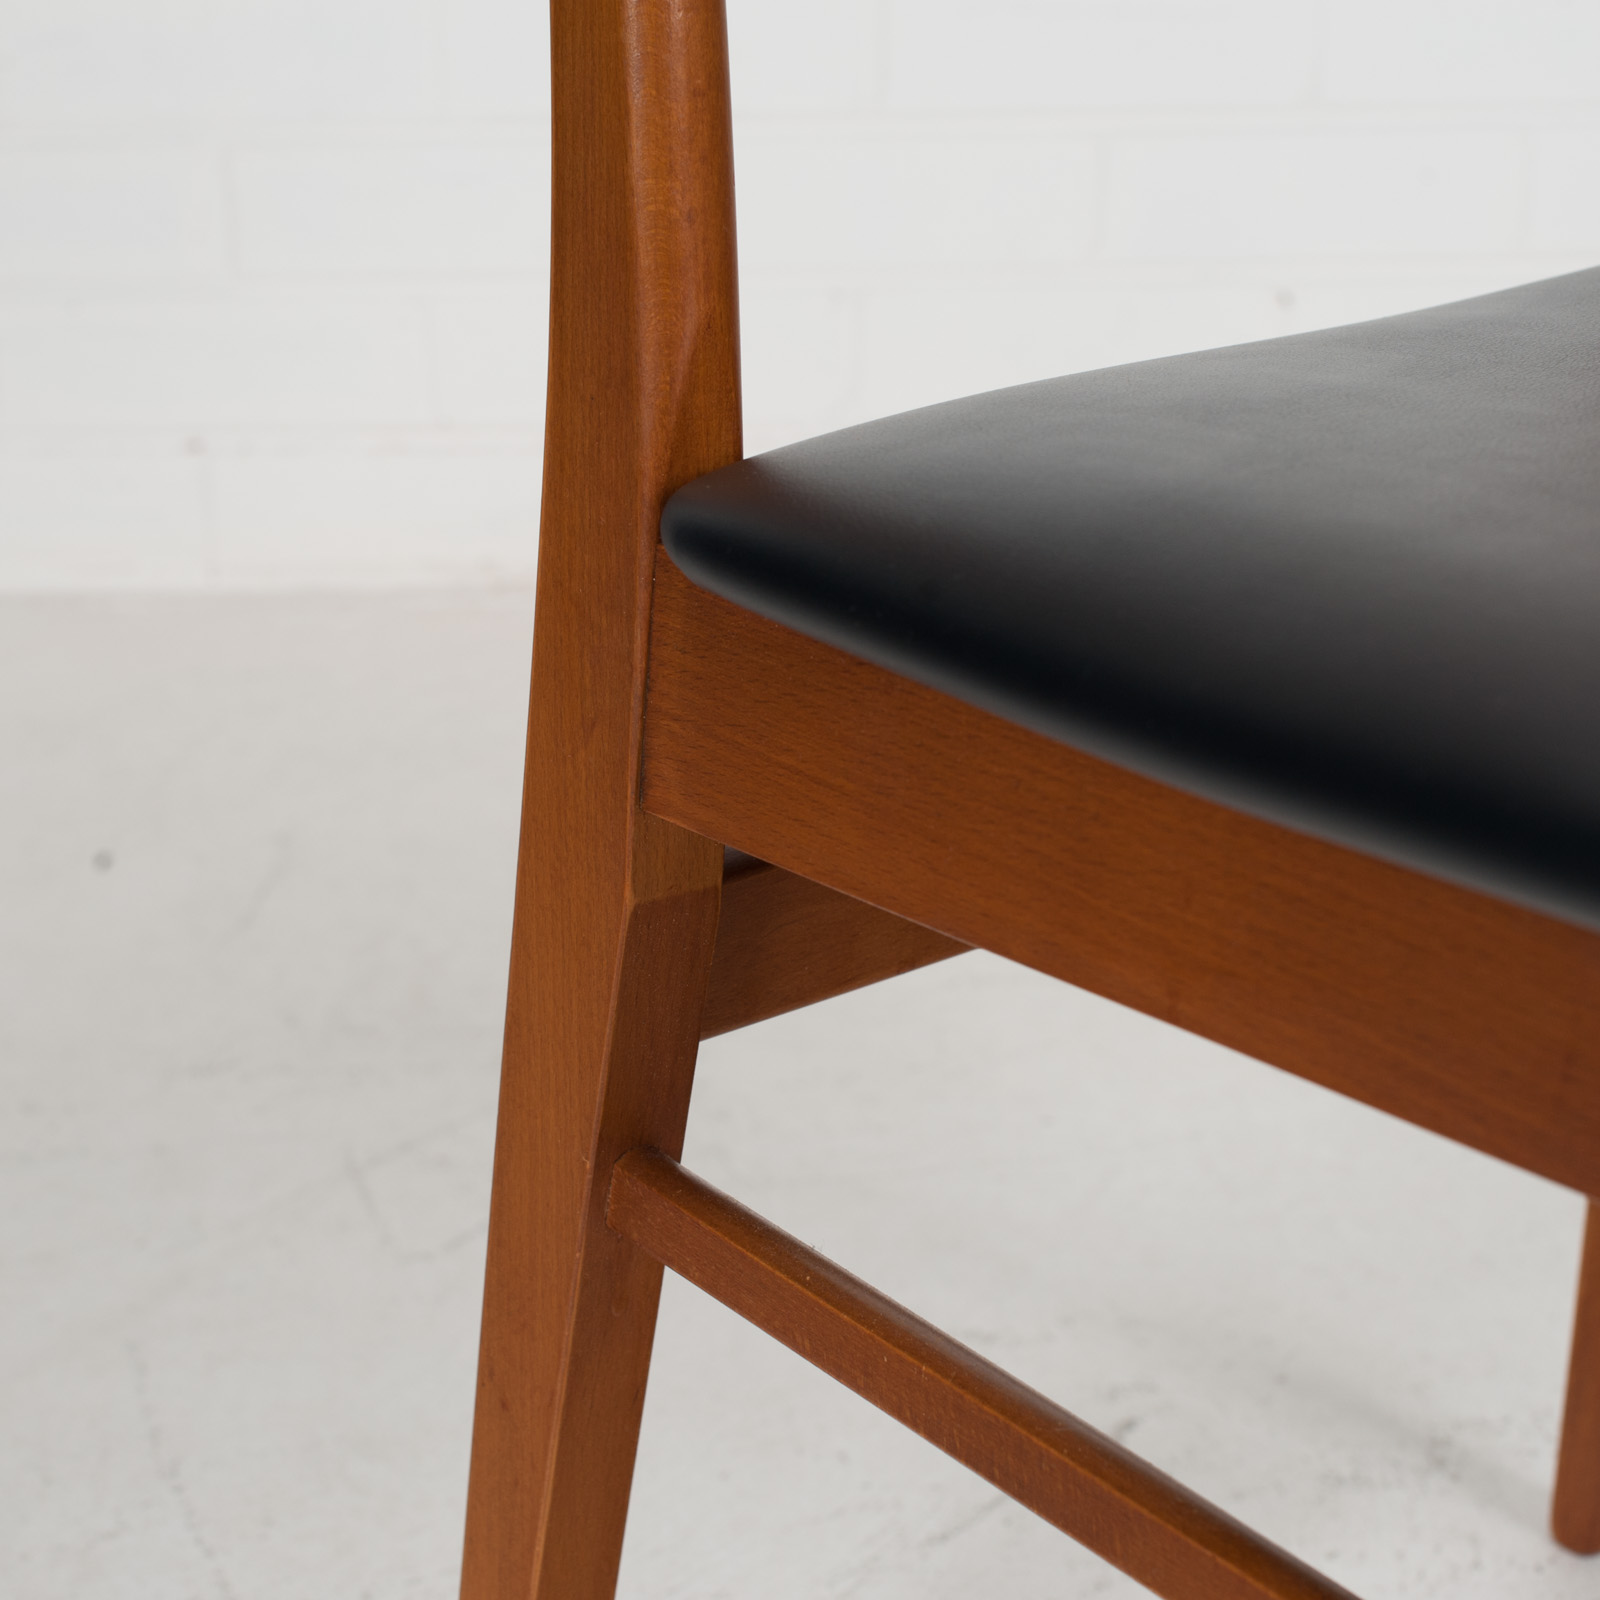 V Back Dining Chairs By Farstrup With Buttons In Teak And New Vinyl Upholstery 1960s Denmark 04